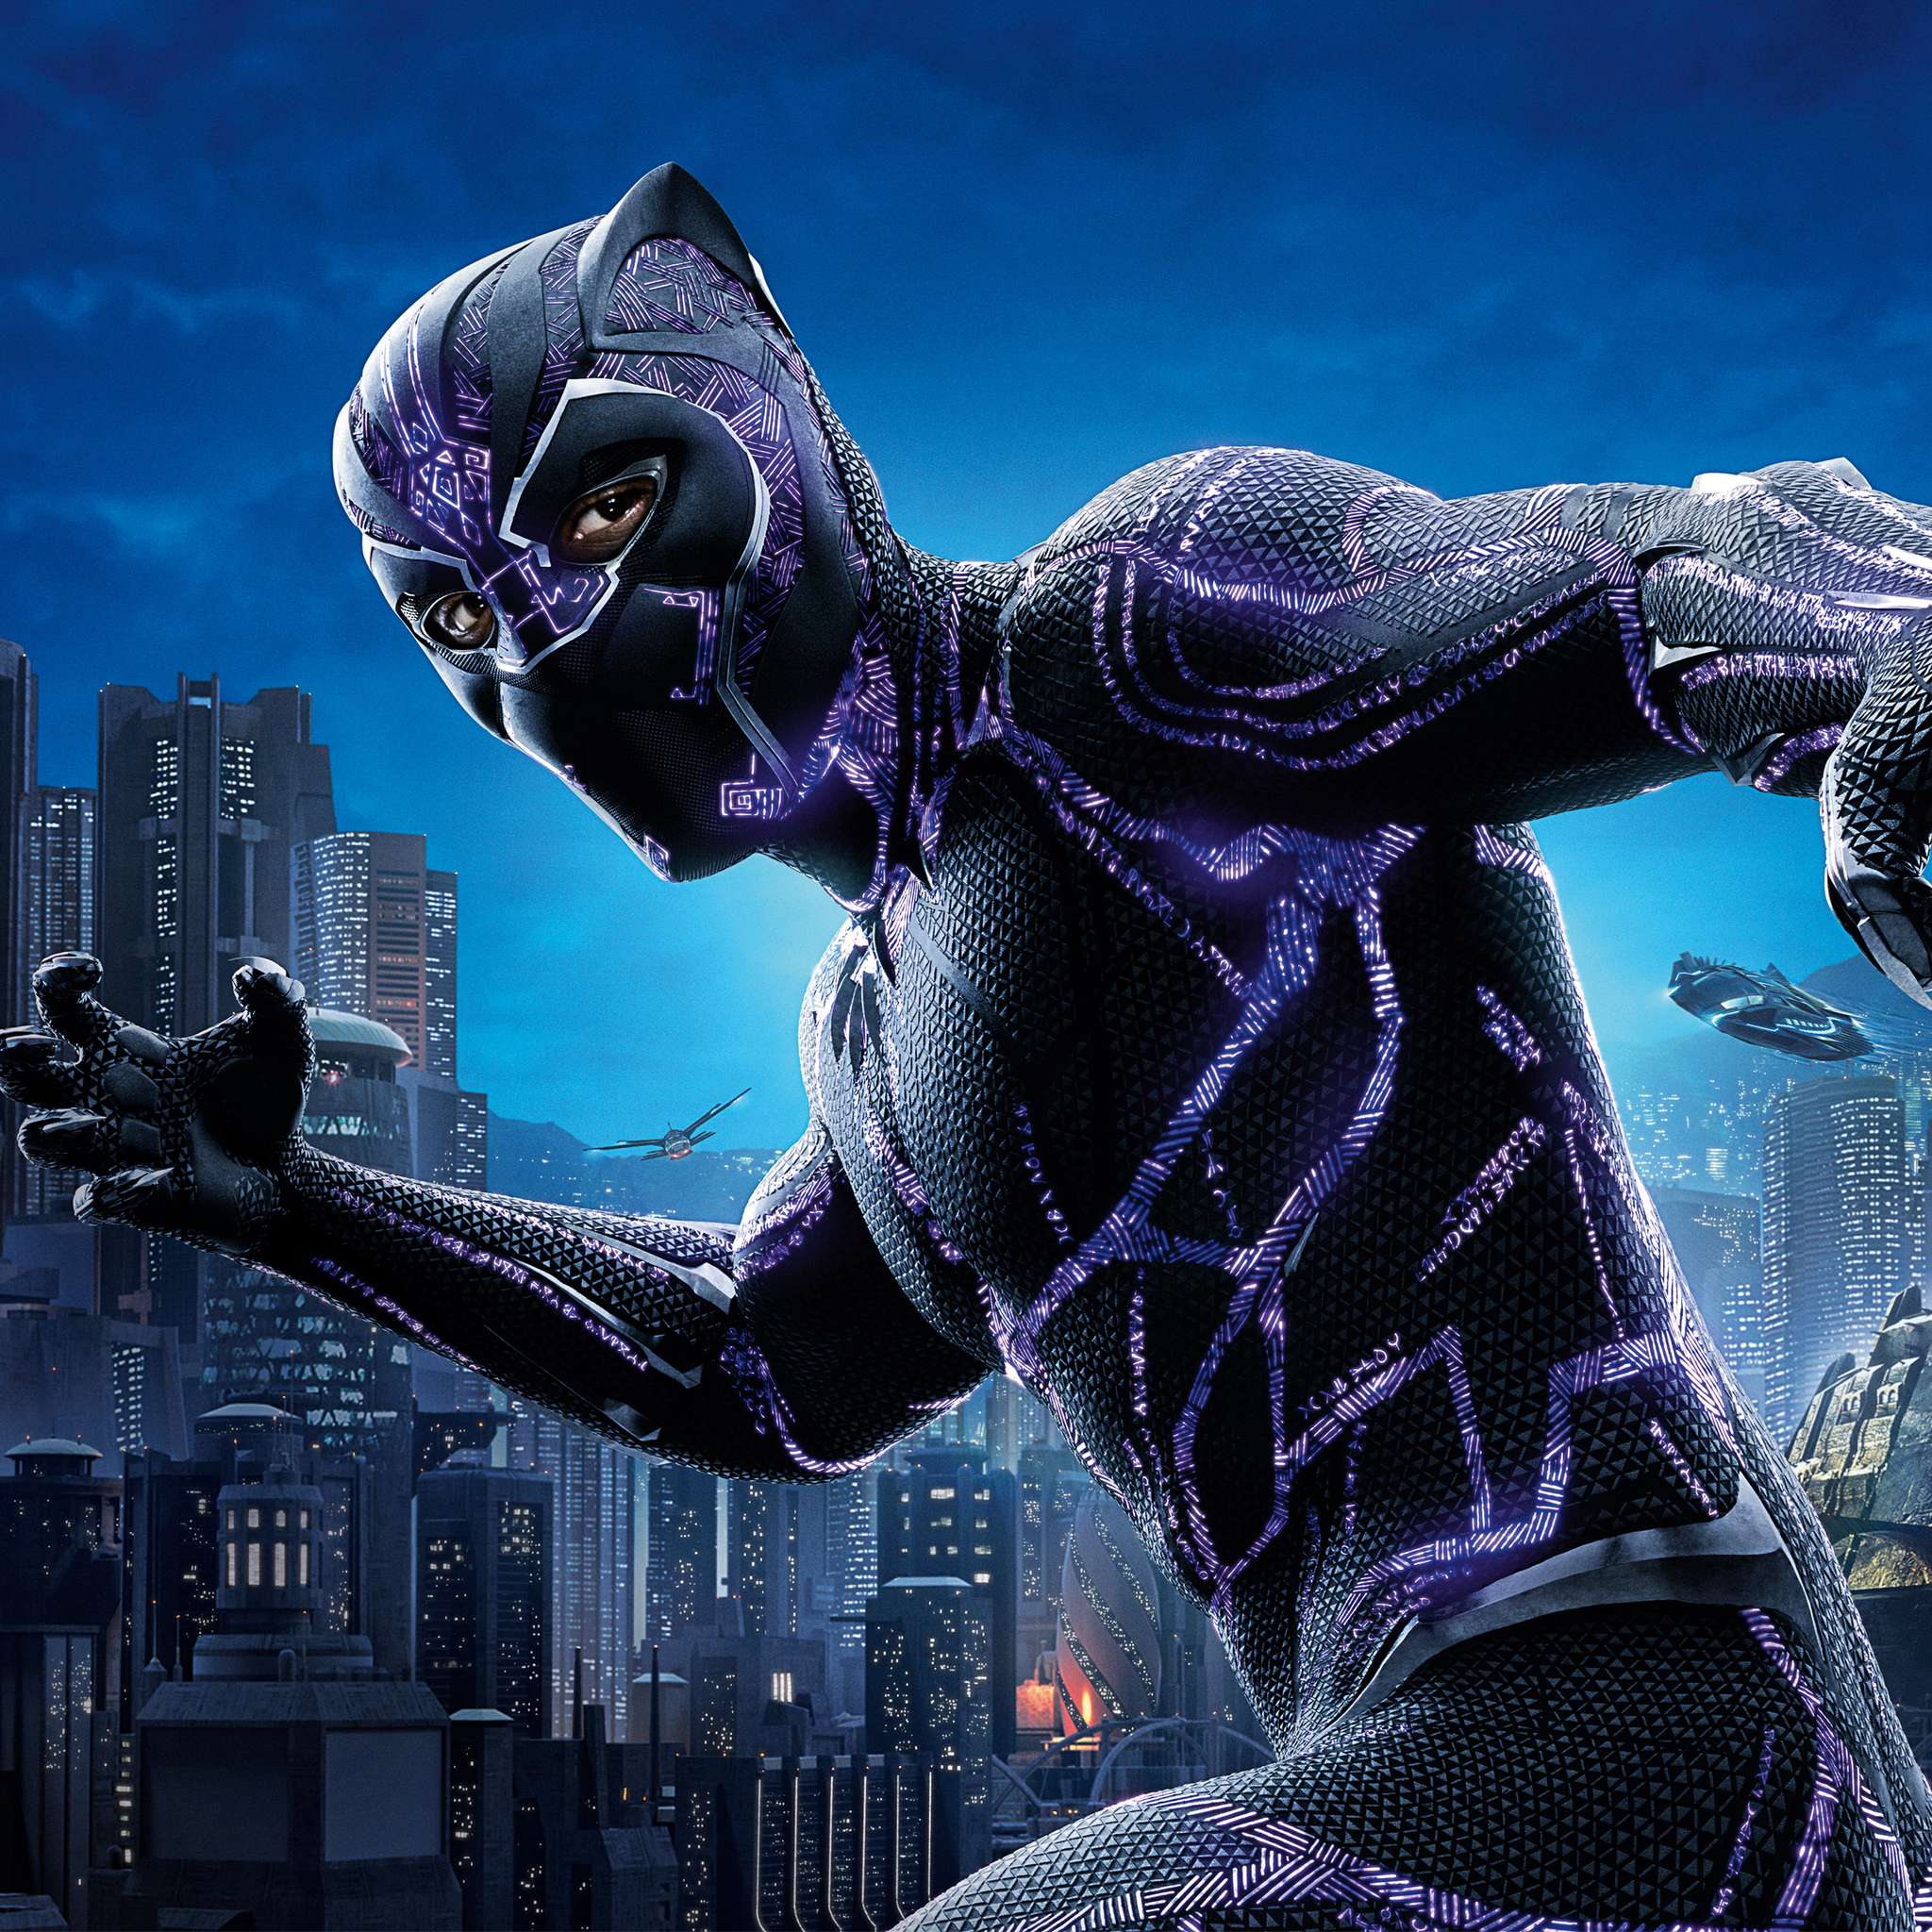 Hd 1600x900 Wallpaper: 2048x2048 Black Panther 4k Movie Poster 2018 Ipad Air HD